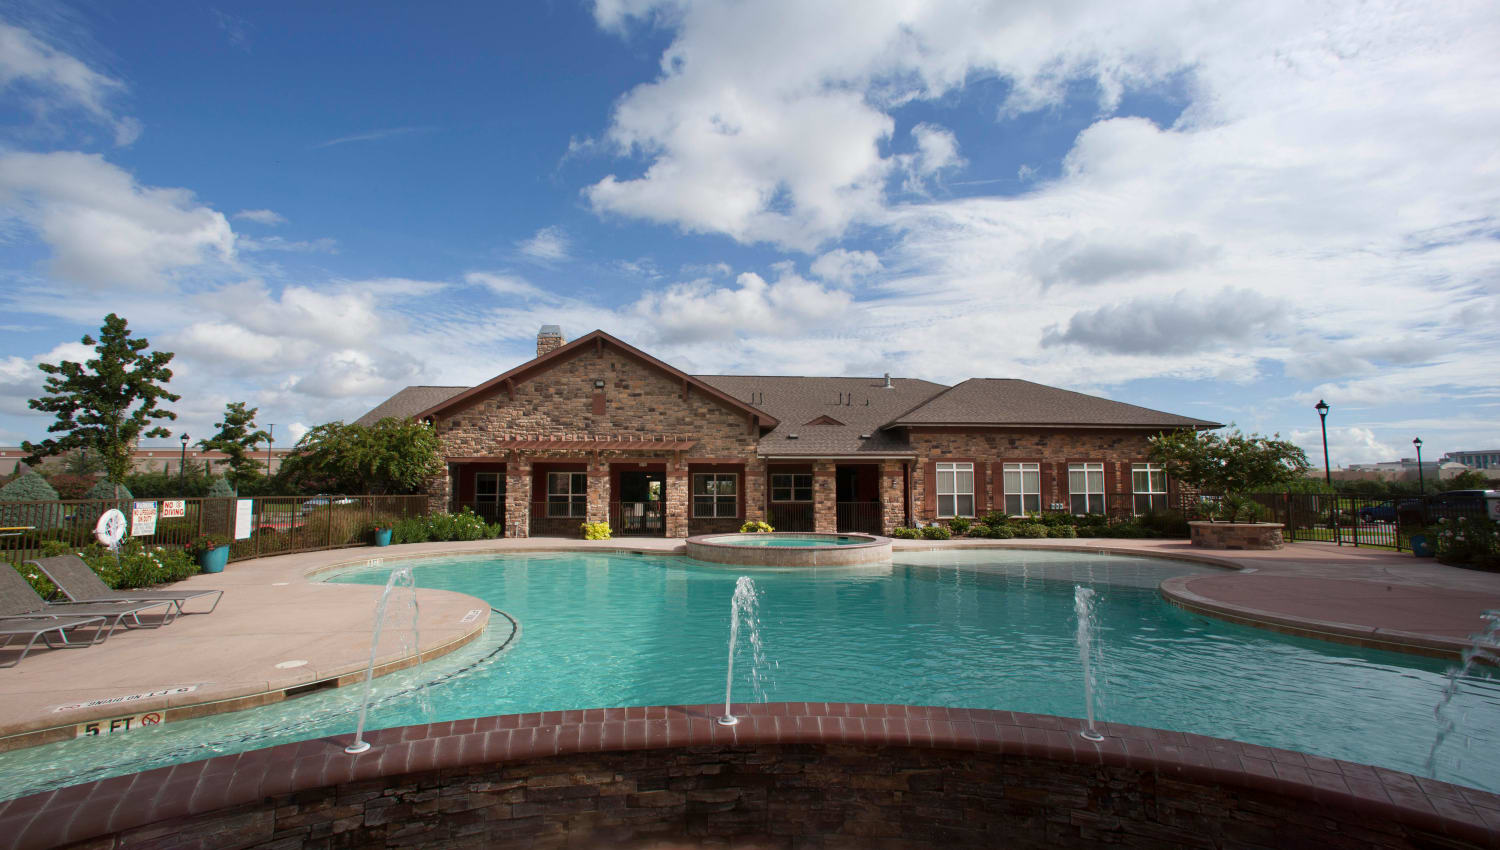 Fountains in the pool at Olympus Katy Ranch in Katy, Texas